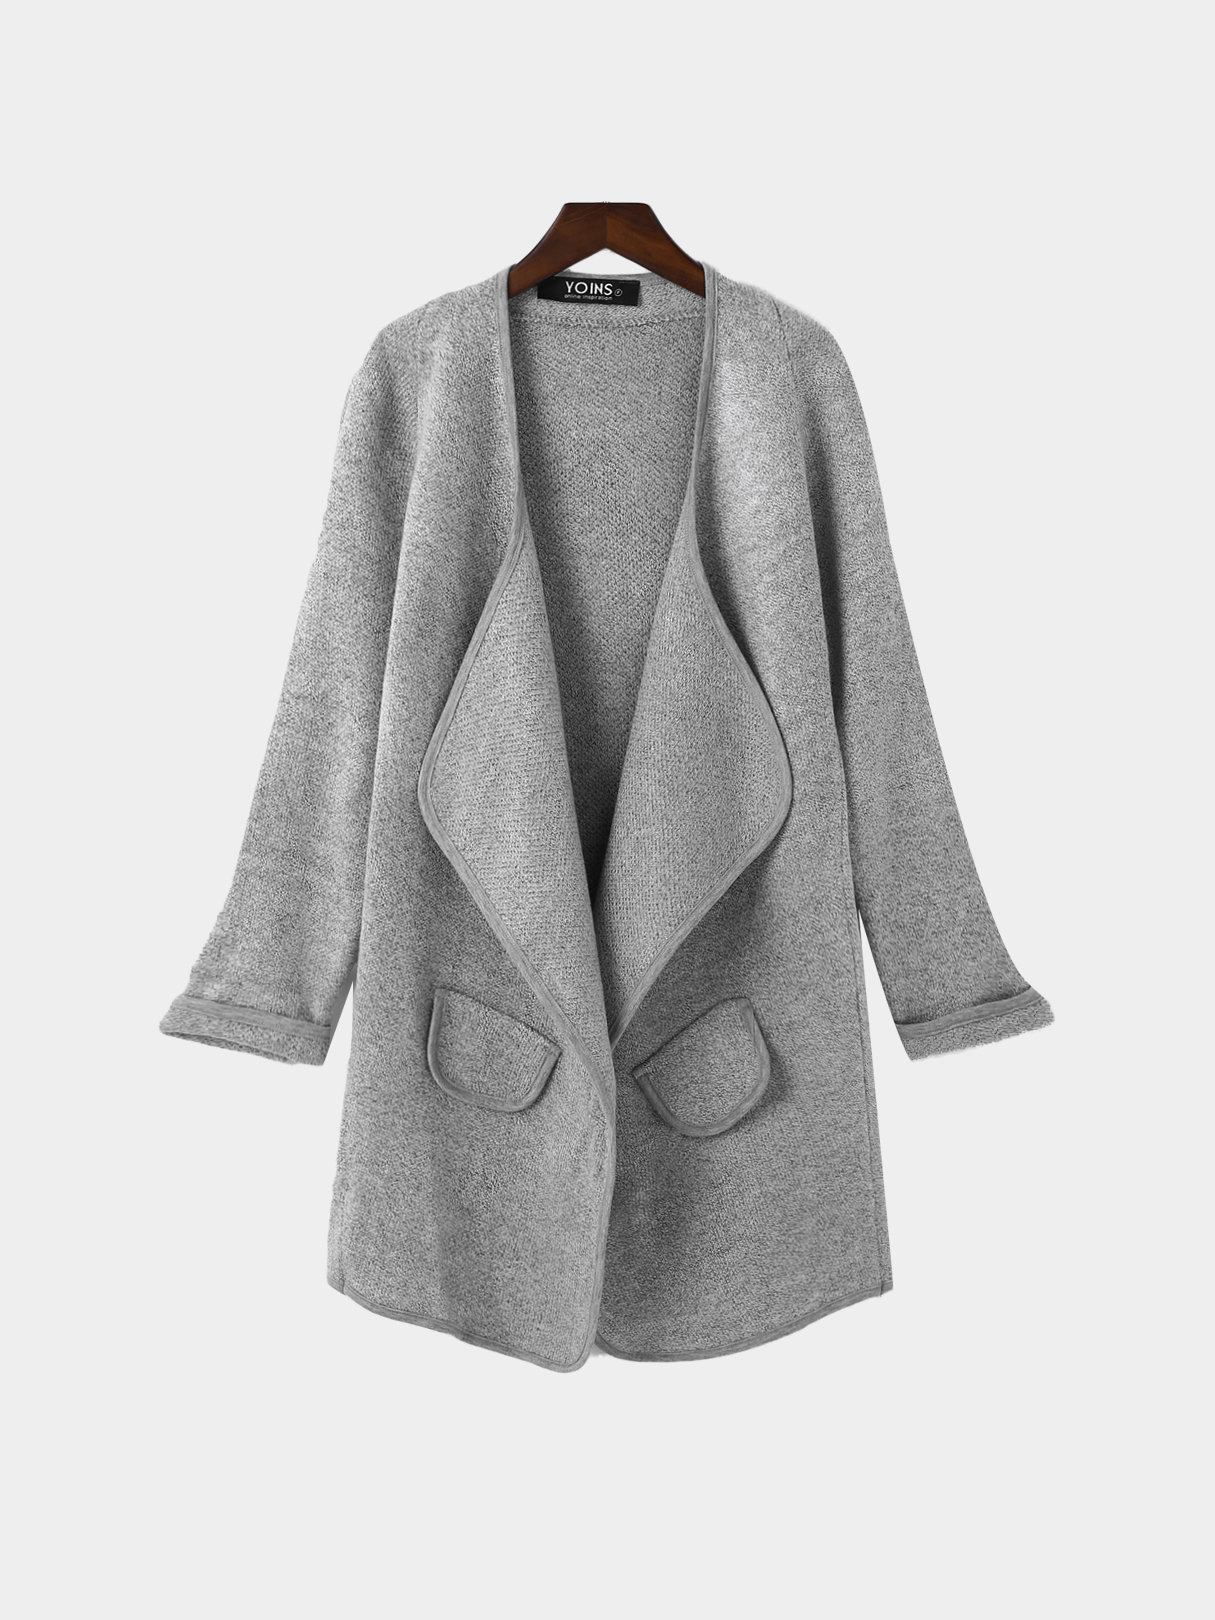 Gray Knit Long Length Cardigan with Pockets